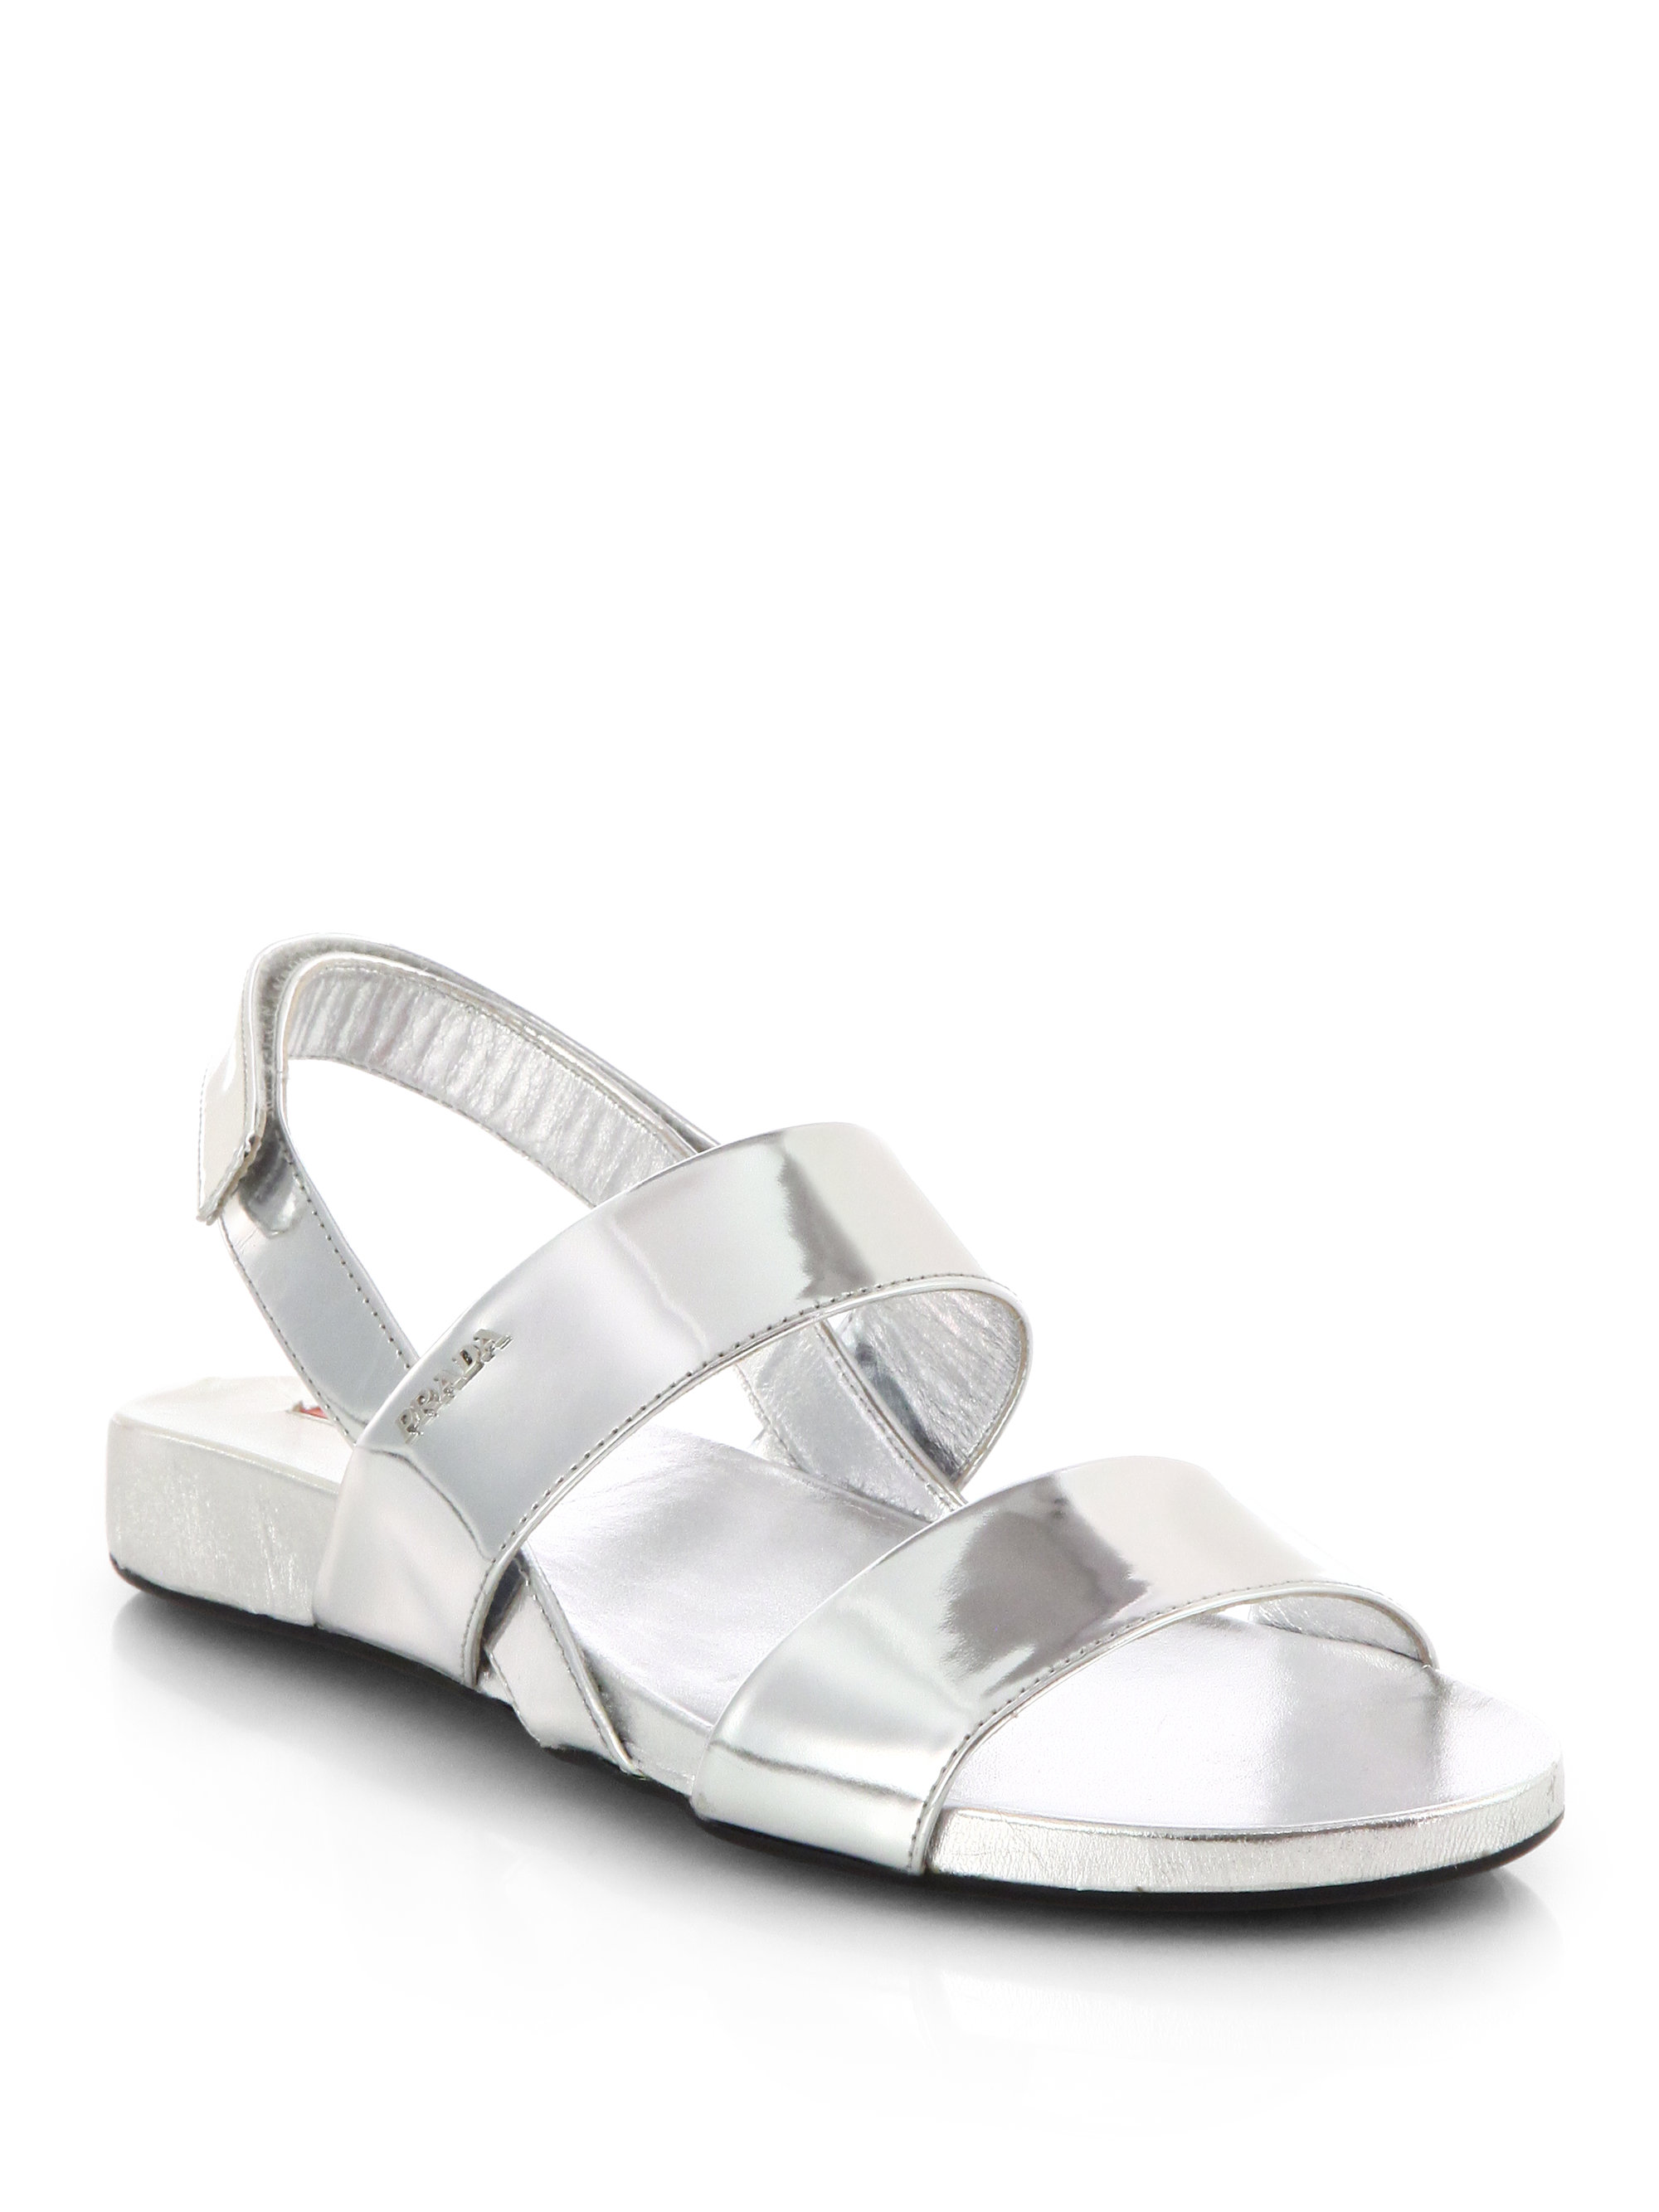 Prada Metallic Leather Doublestrap Sandals In Silver